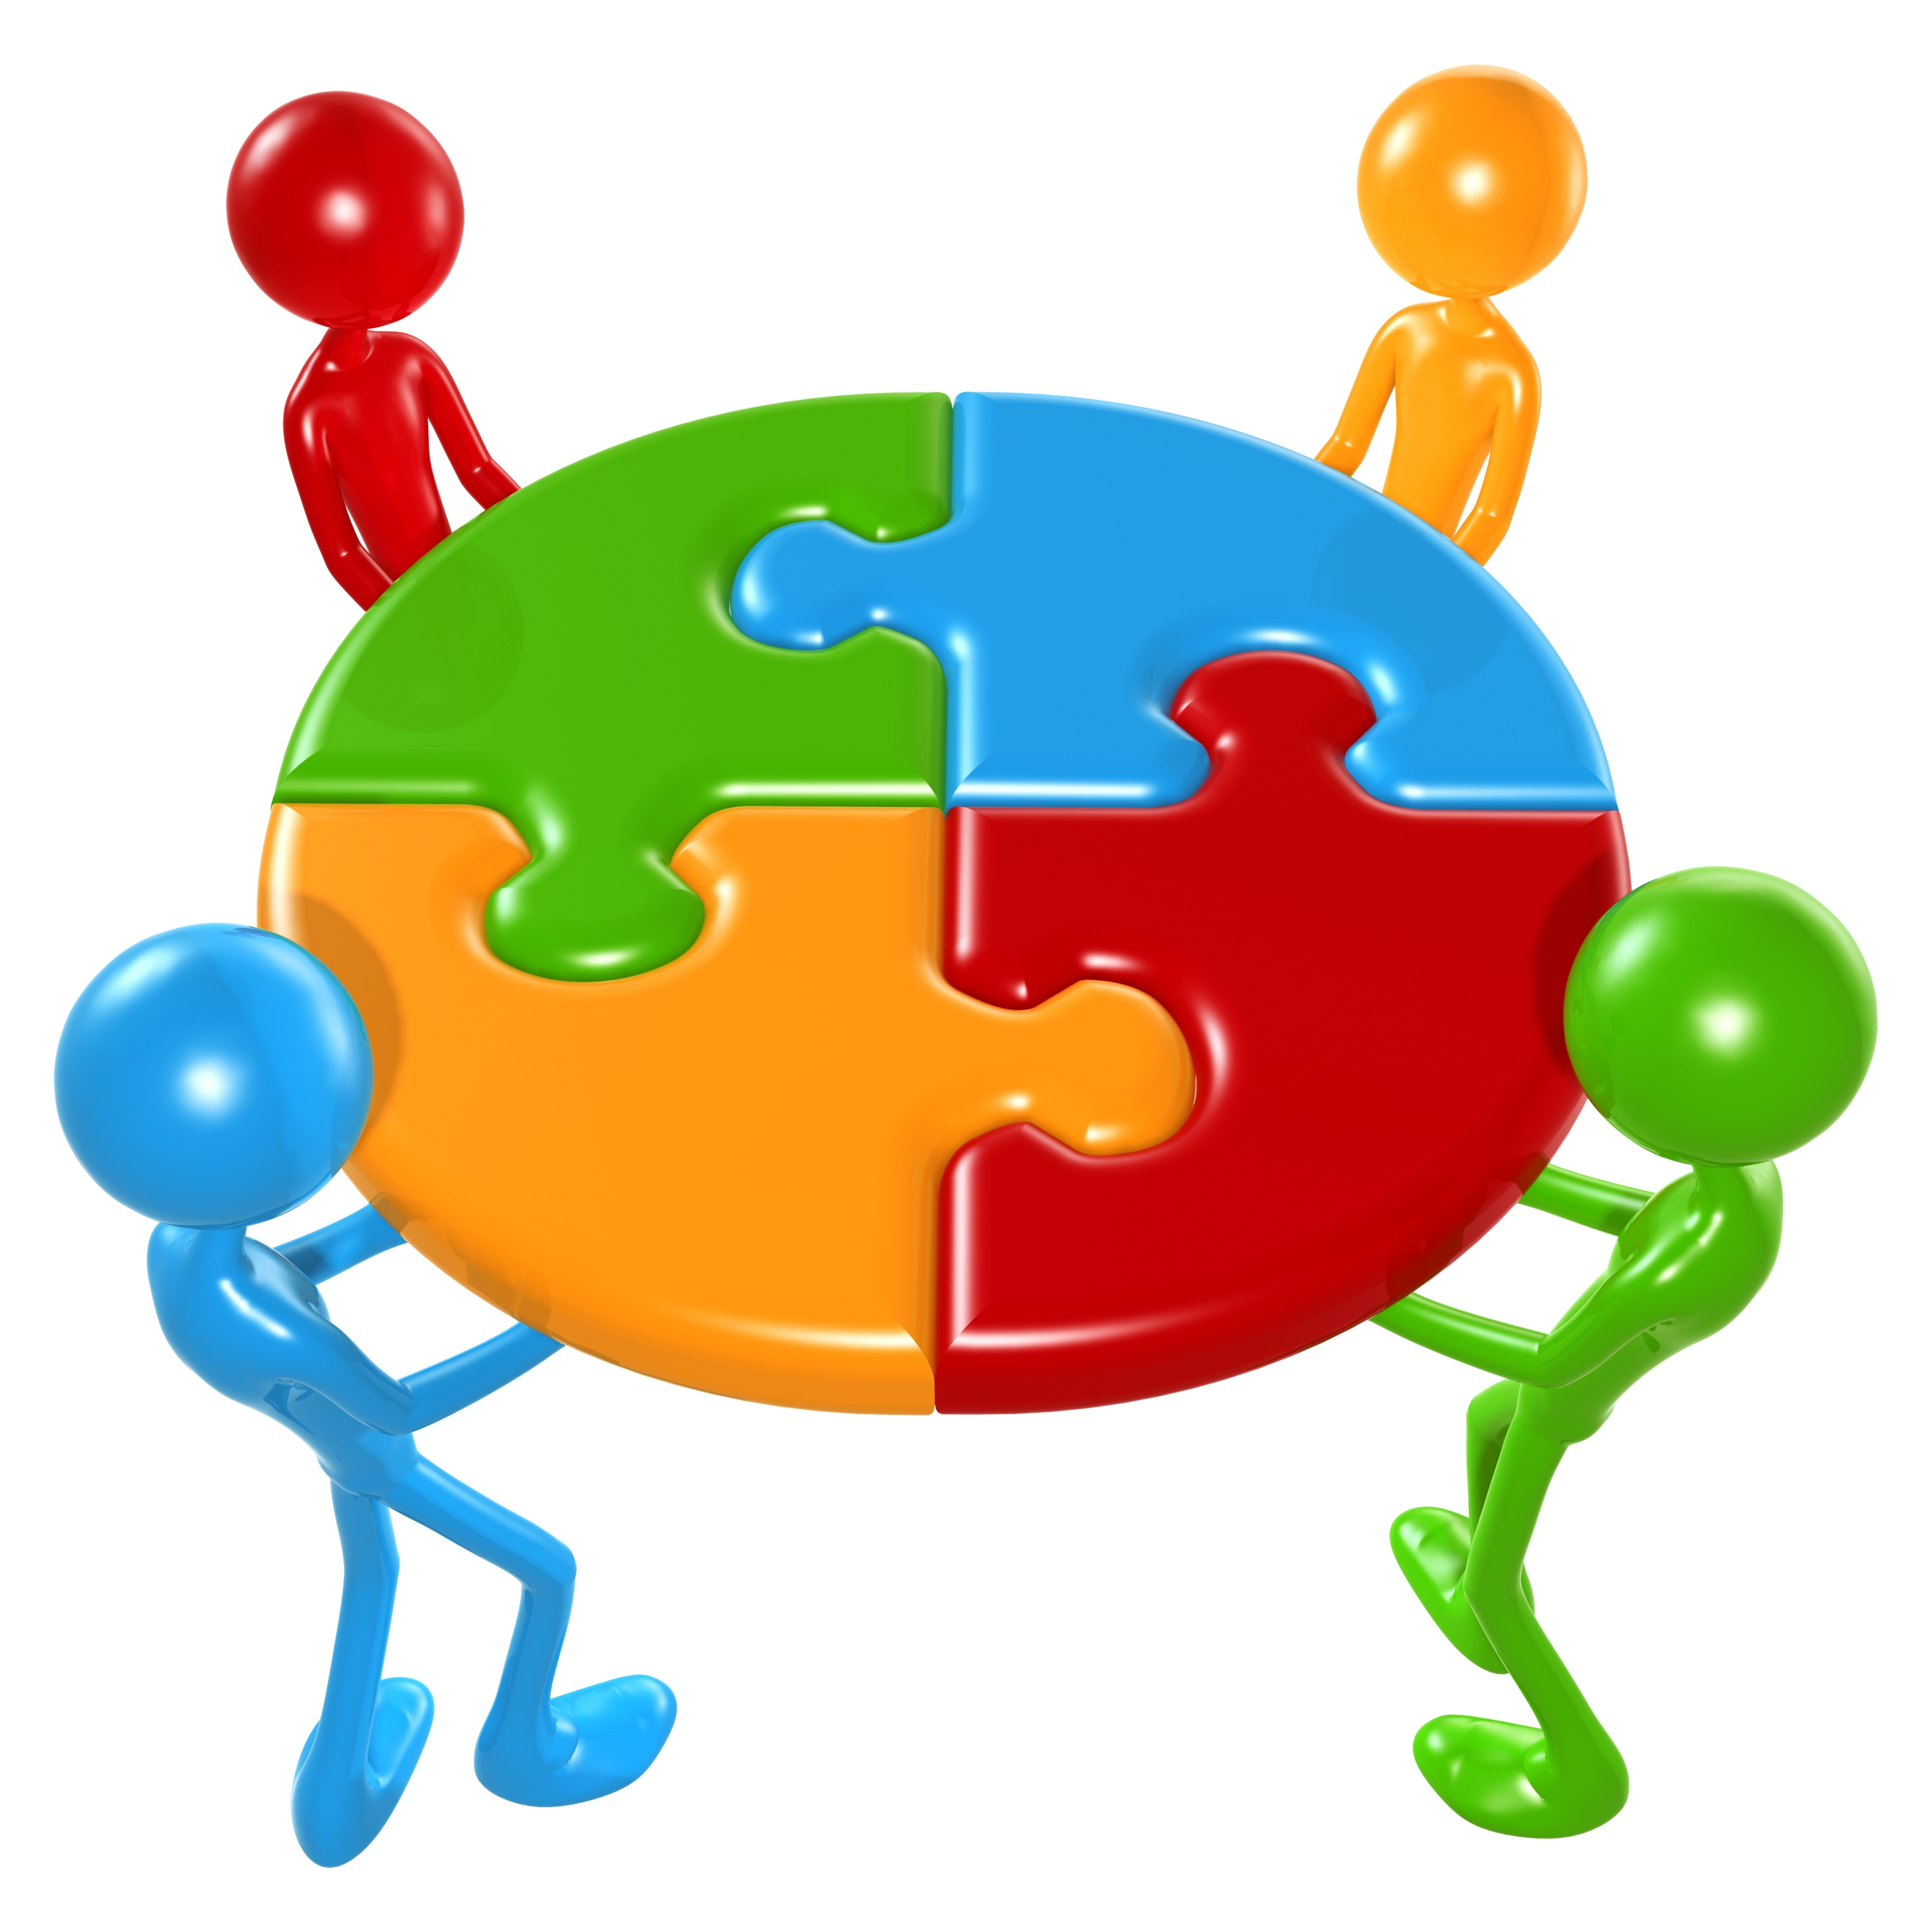 Teamwork clipart. Fresh collection digital coloring